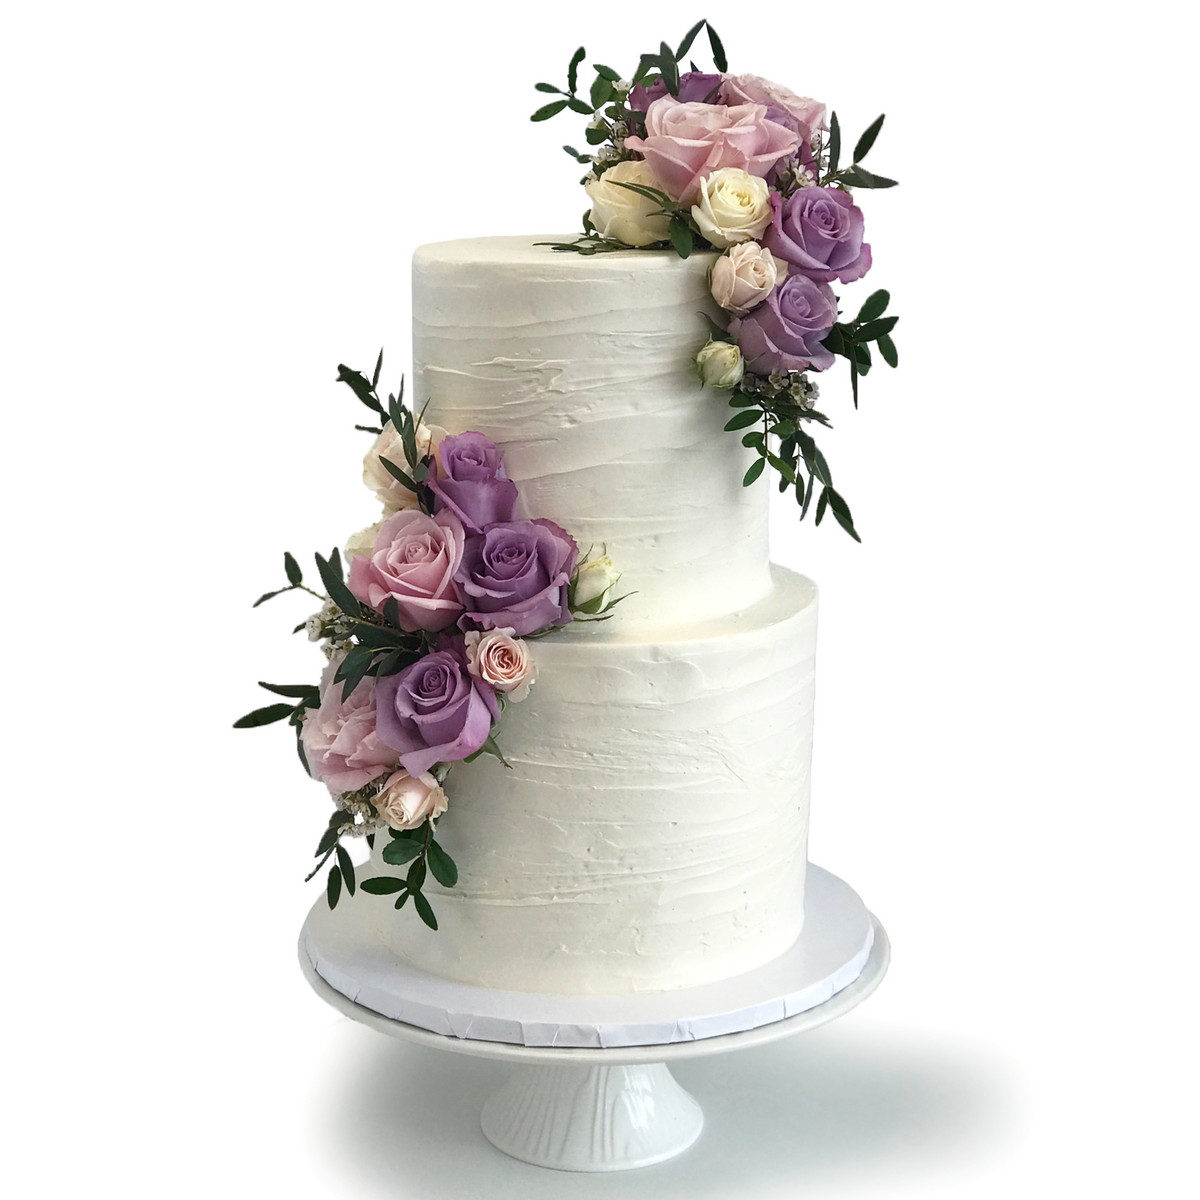 Whippt Kitchen - Wedding Cake 2